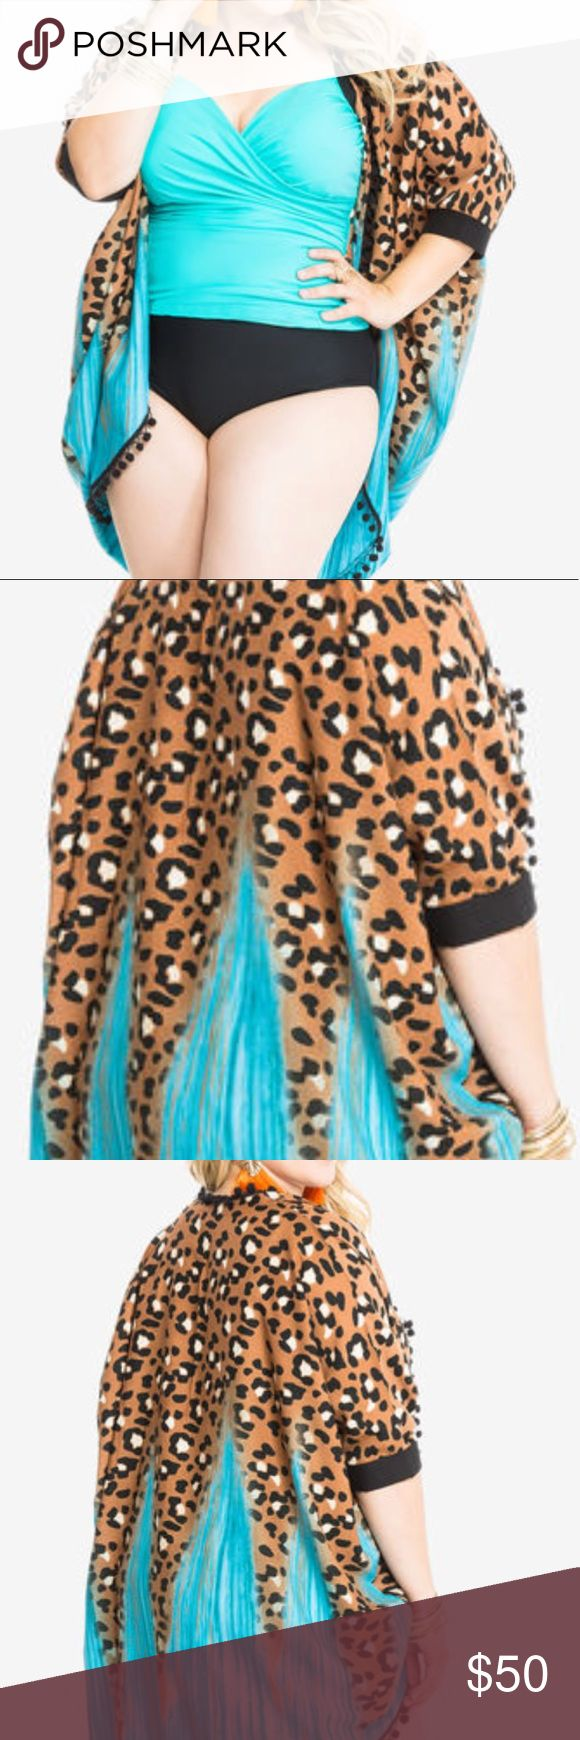 """Cover up and swim top 14/16 Soak up the sun in my cheetah print plus size bandeau top! Pair with my Cheetah Print Ruched Swim Skirt for a matching set.Soft, lightly padded lining. Adjustable straps. Back clasp closure.Plus size 14 measures 15.5"""".  Cover up included... torrid Swim Coverups"""